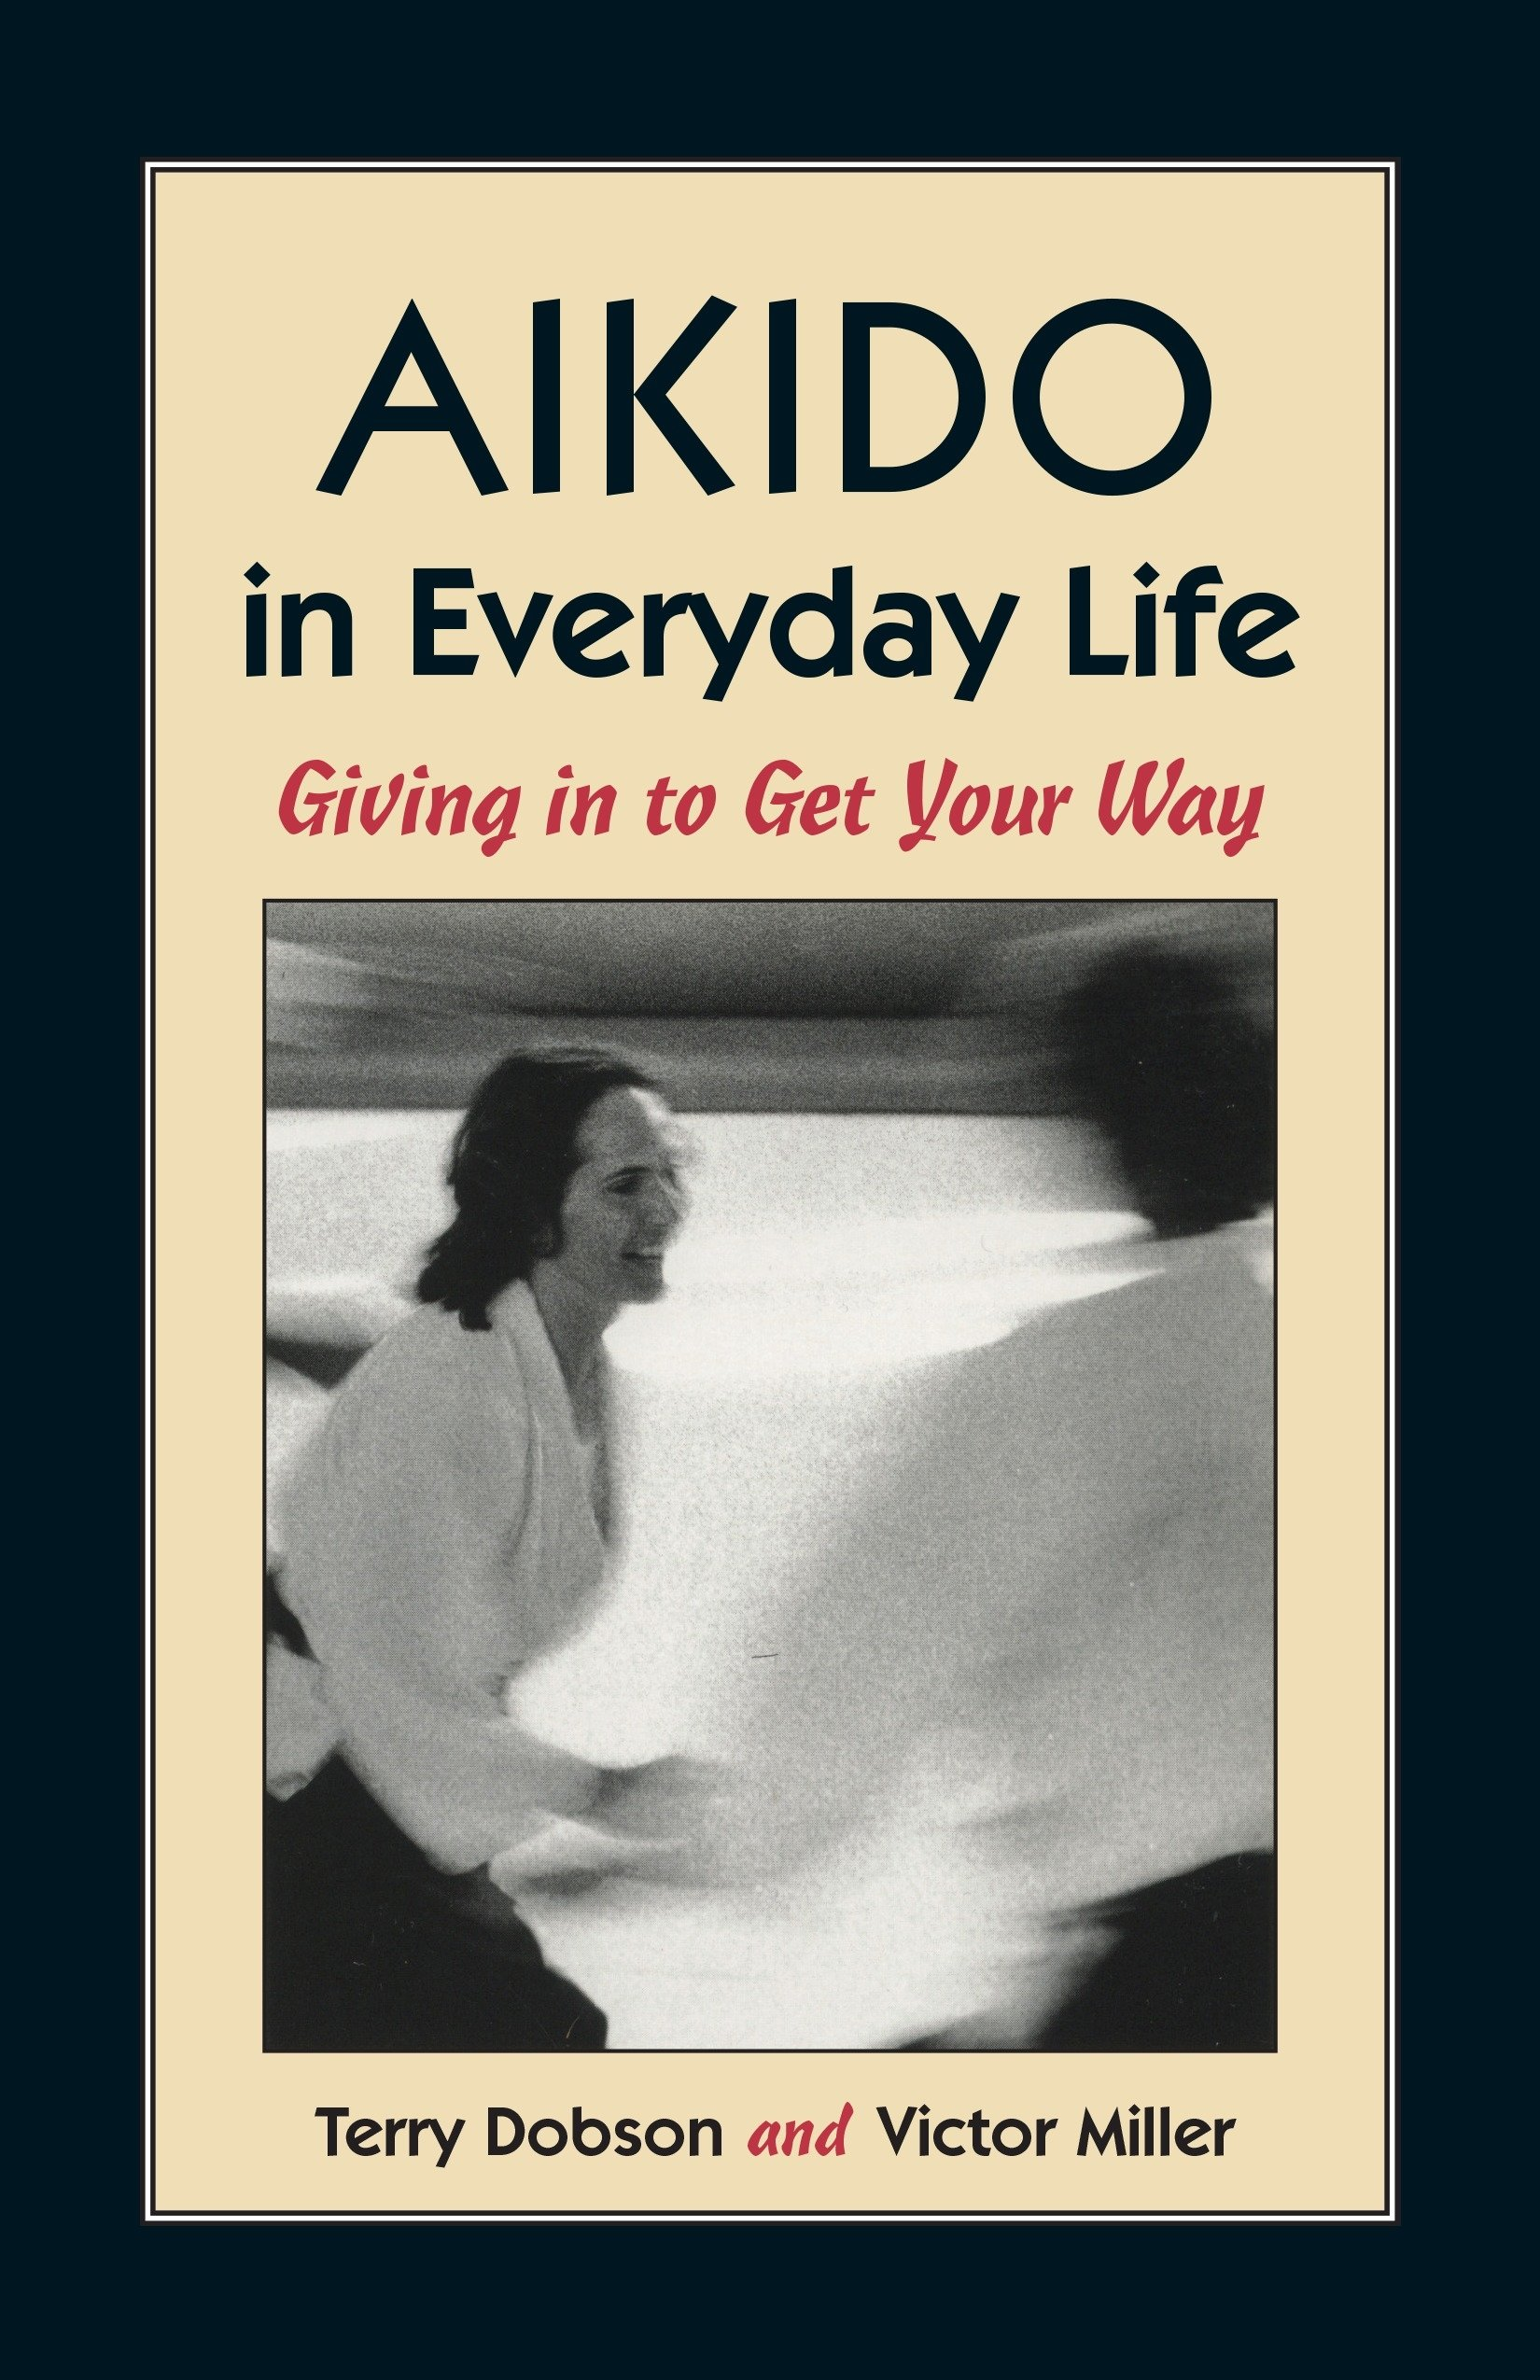 Image OfAikido In Everyday Life: Giving In To Get Your Way: Giving In To Get Your Way Second Edition